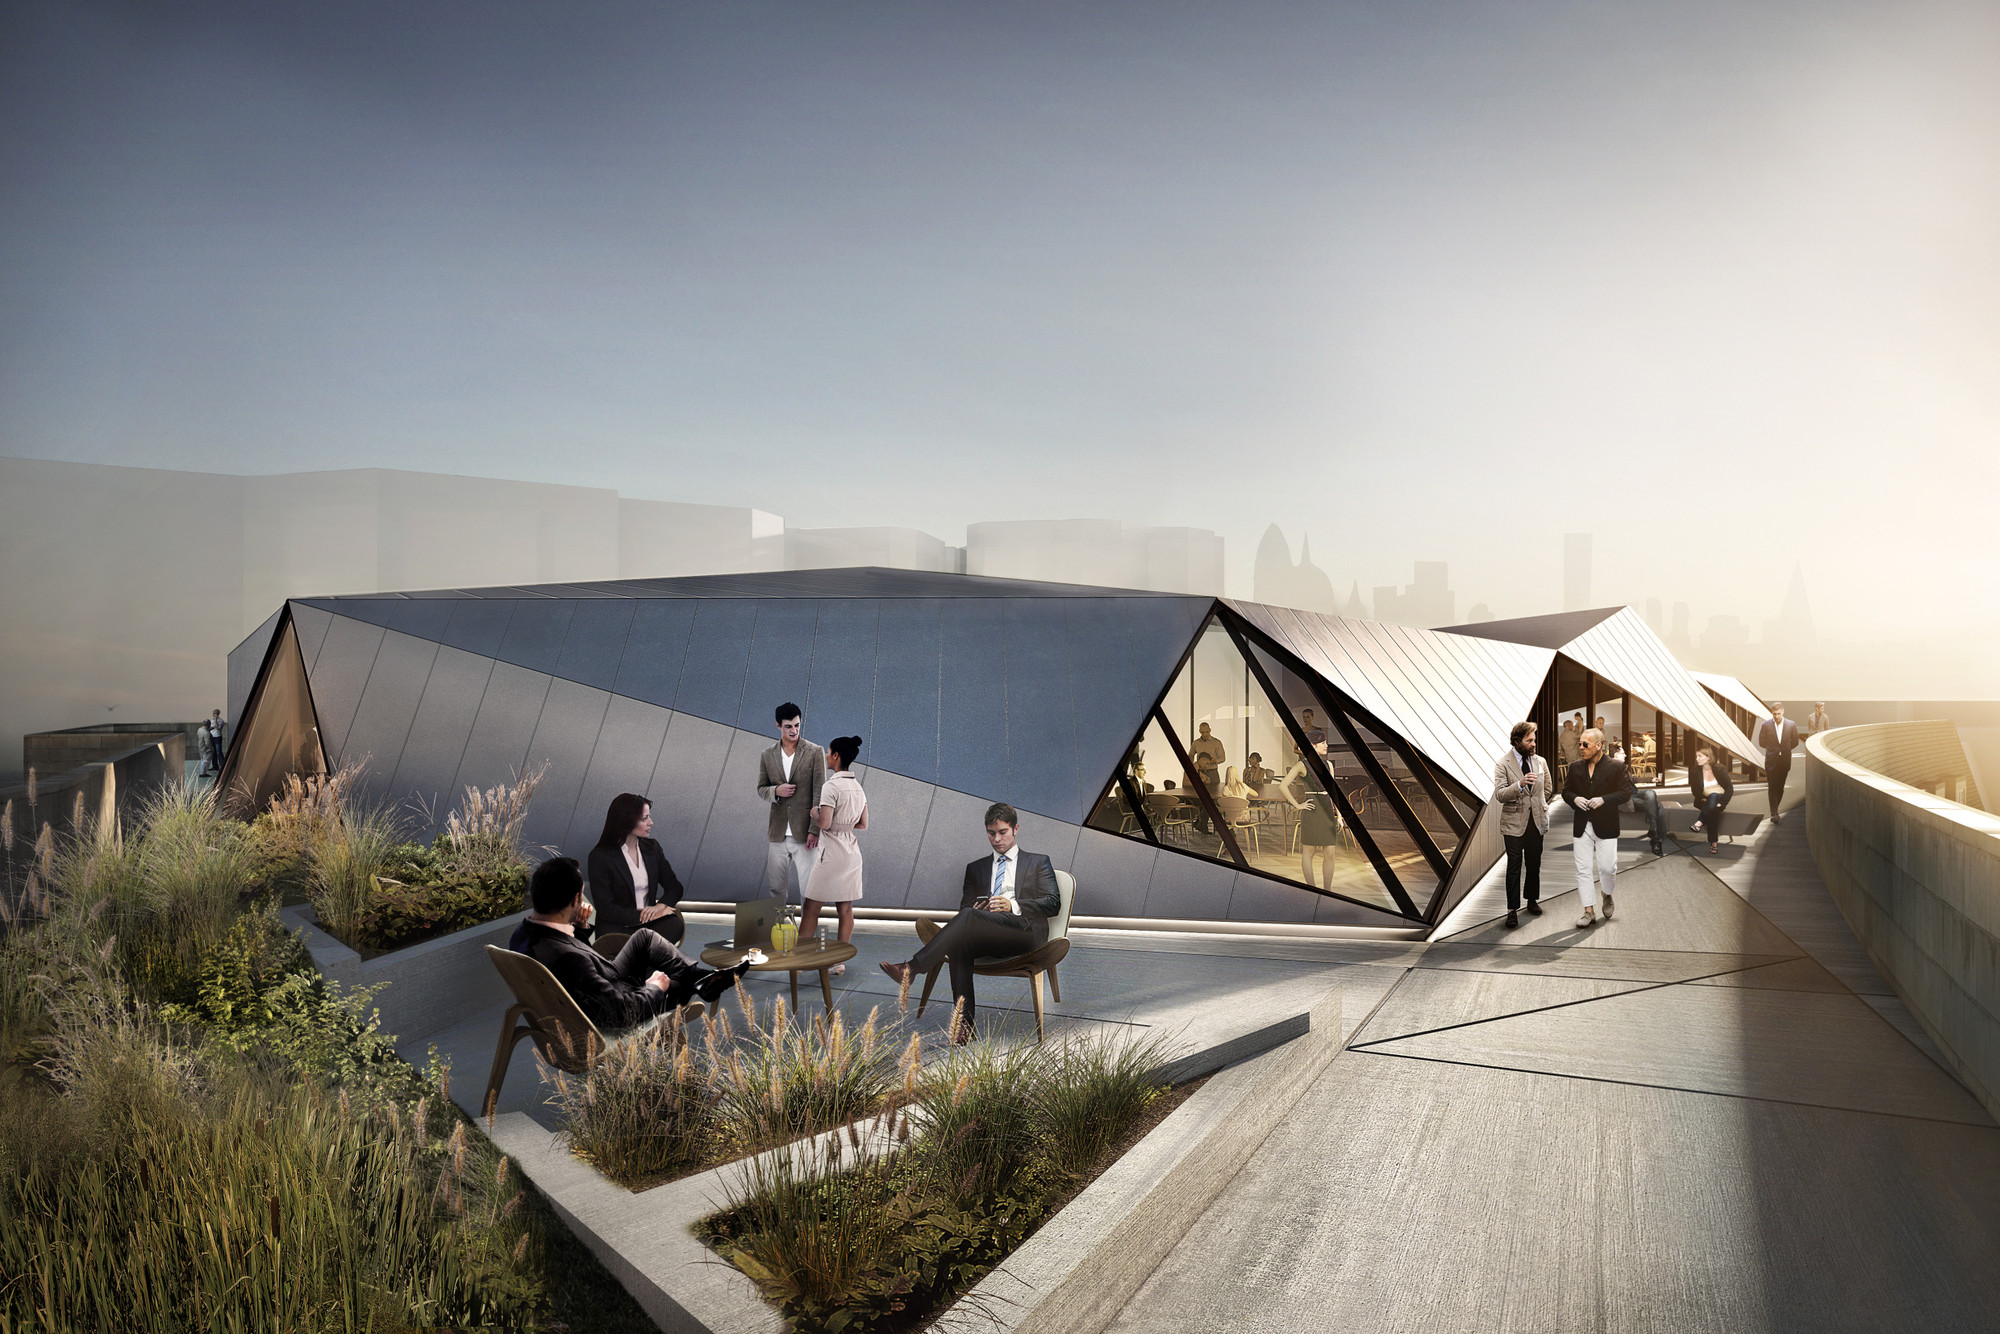 Roof Top Design sheppard robson designs rooftop pavilion for aldwych house | archdaily